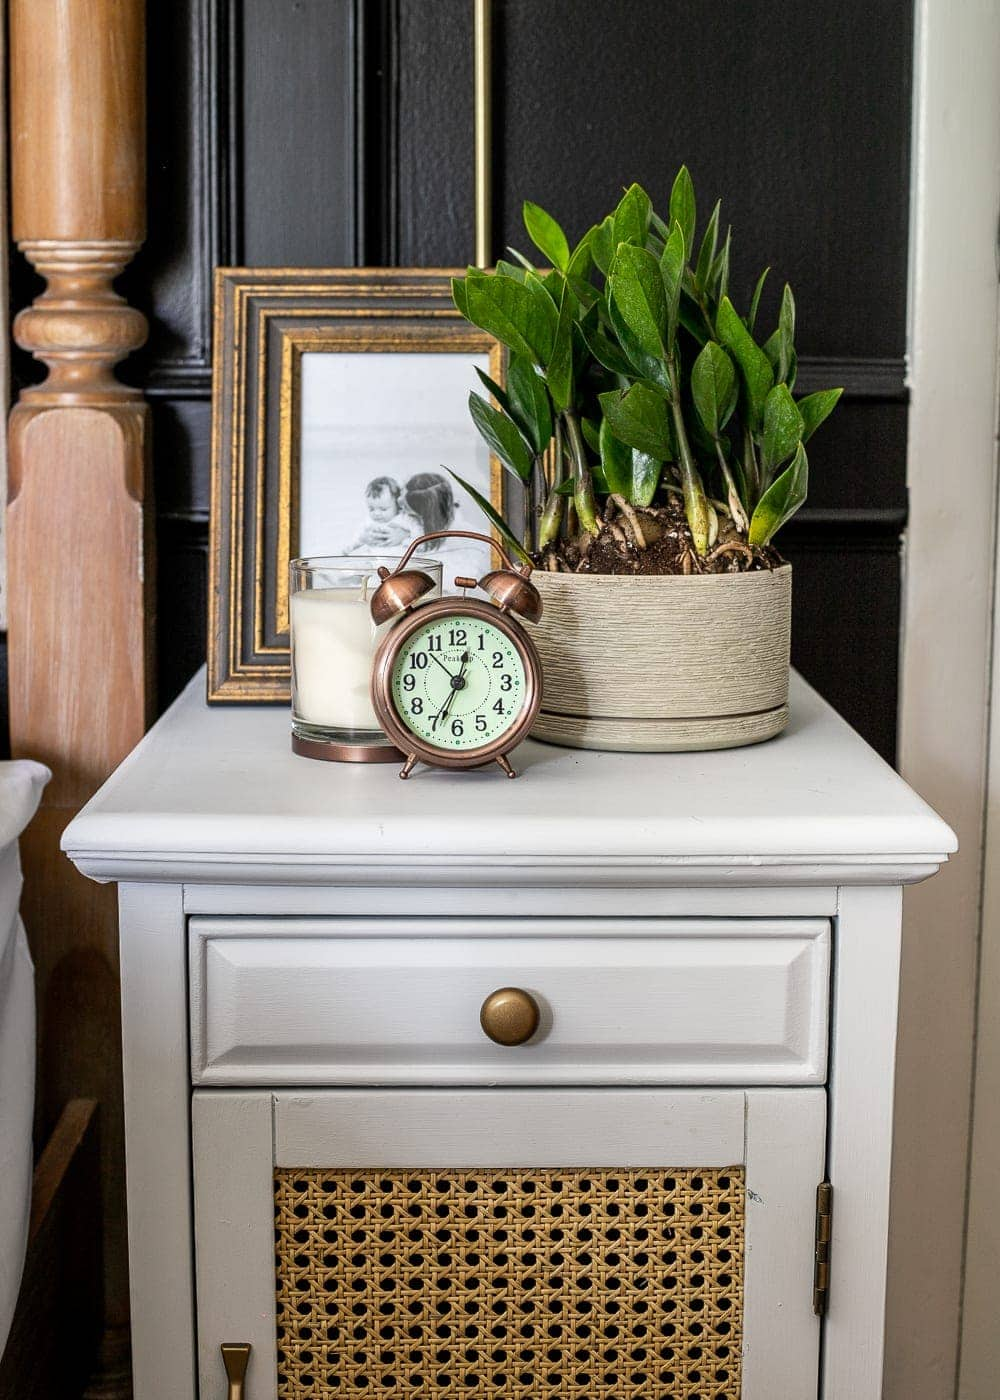 nightstand decor: A Desktop Plaque and A Small Clock